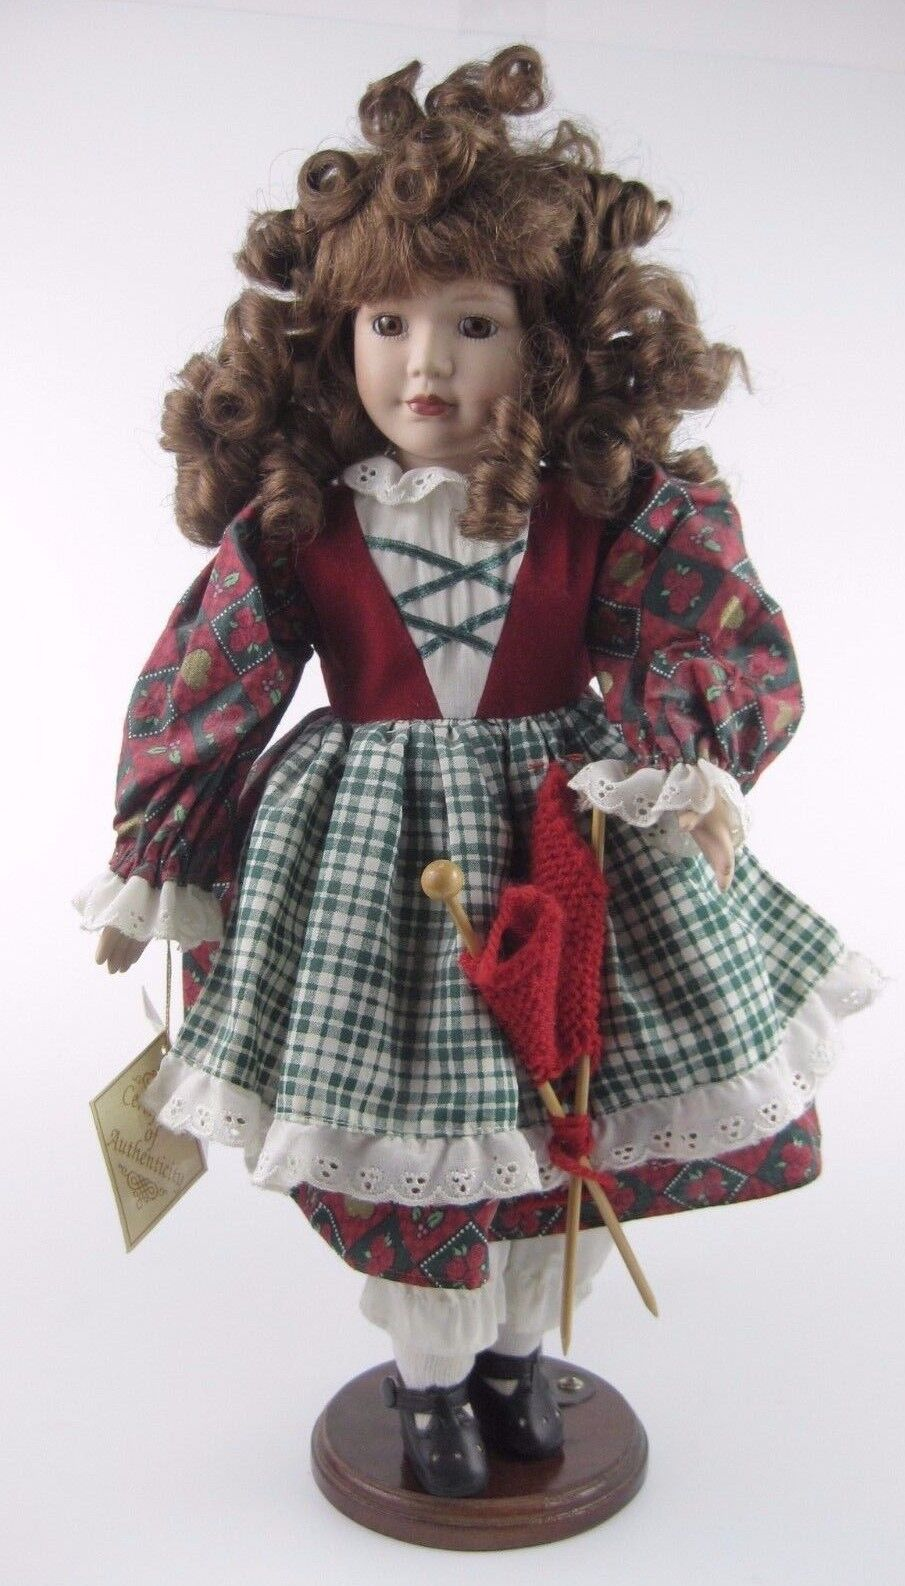 Porcelain Doll with Fine Certificate Soft Expressions Genuine Fine with Bisque Porcelain f4fb50